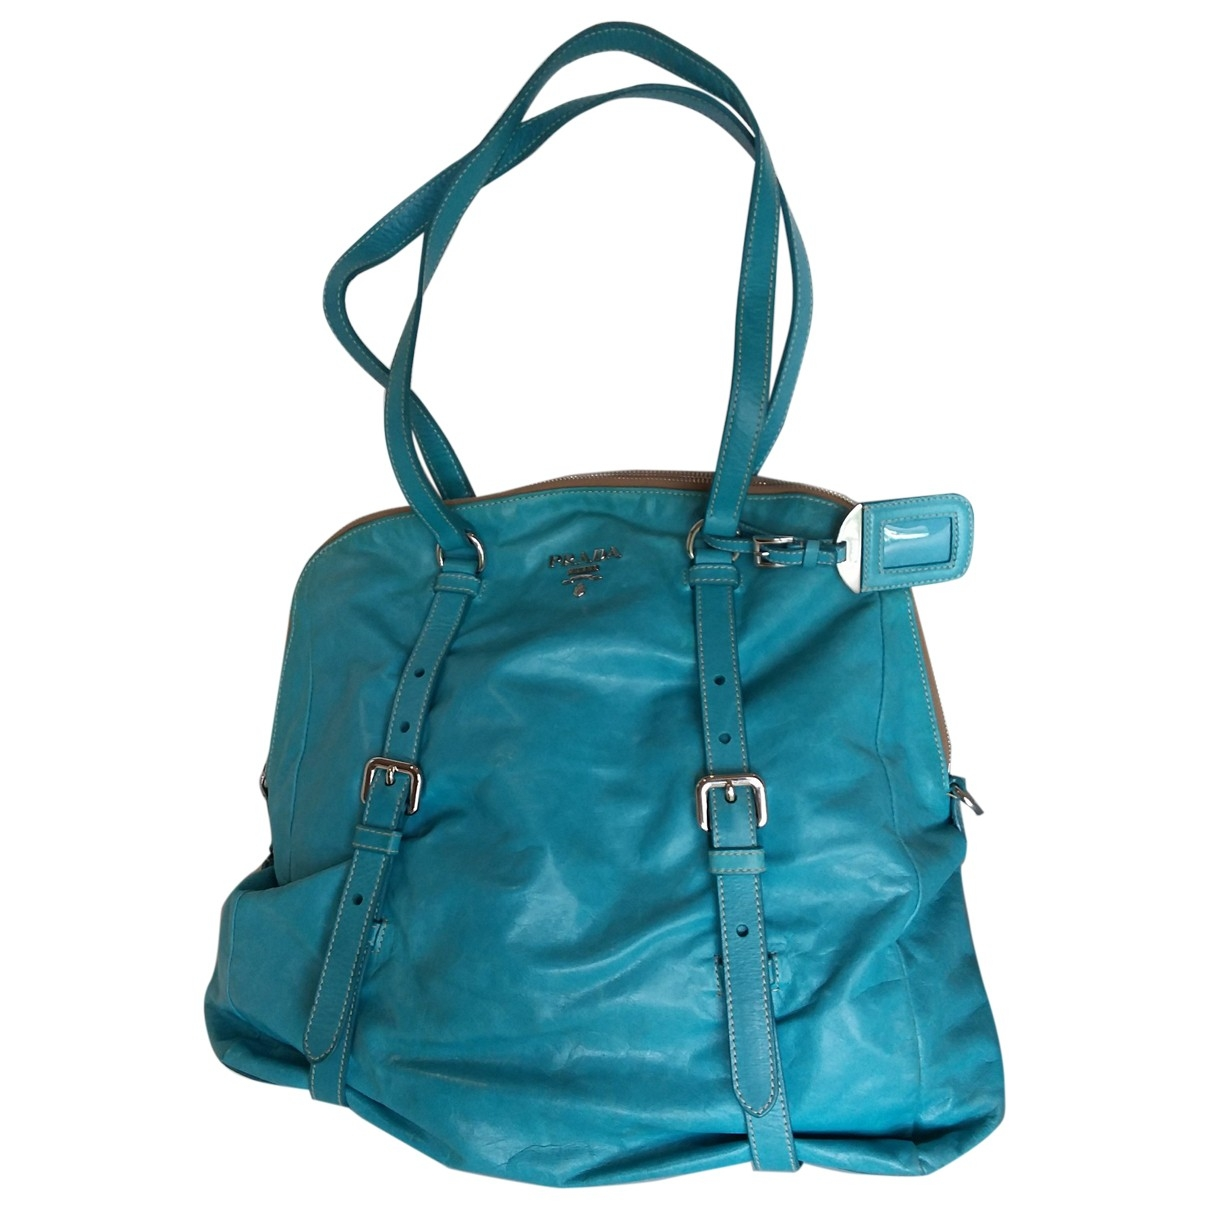 Prada \N Turquoise Leather handbag for Women \N